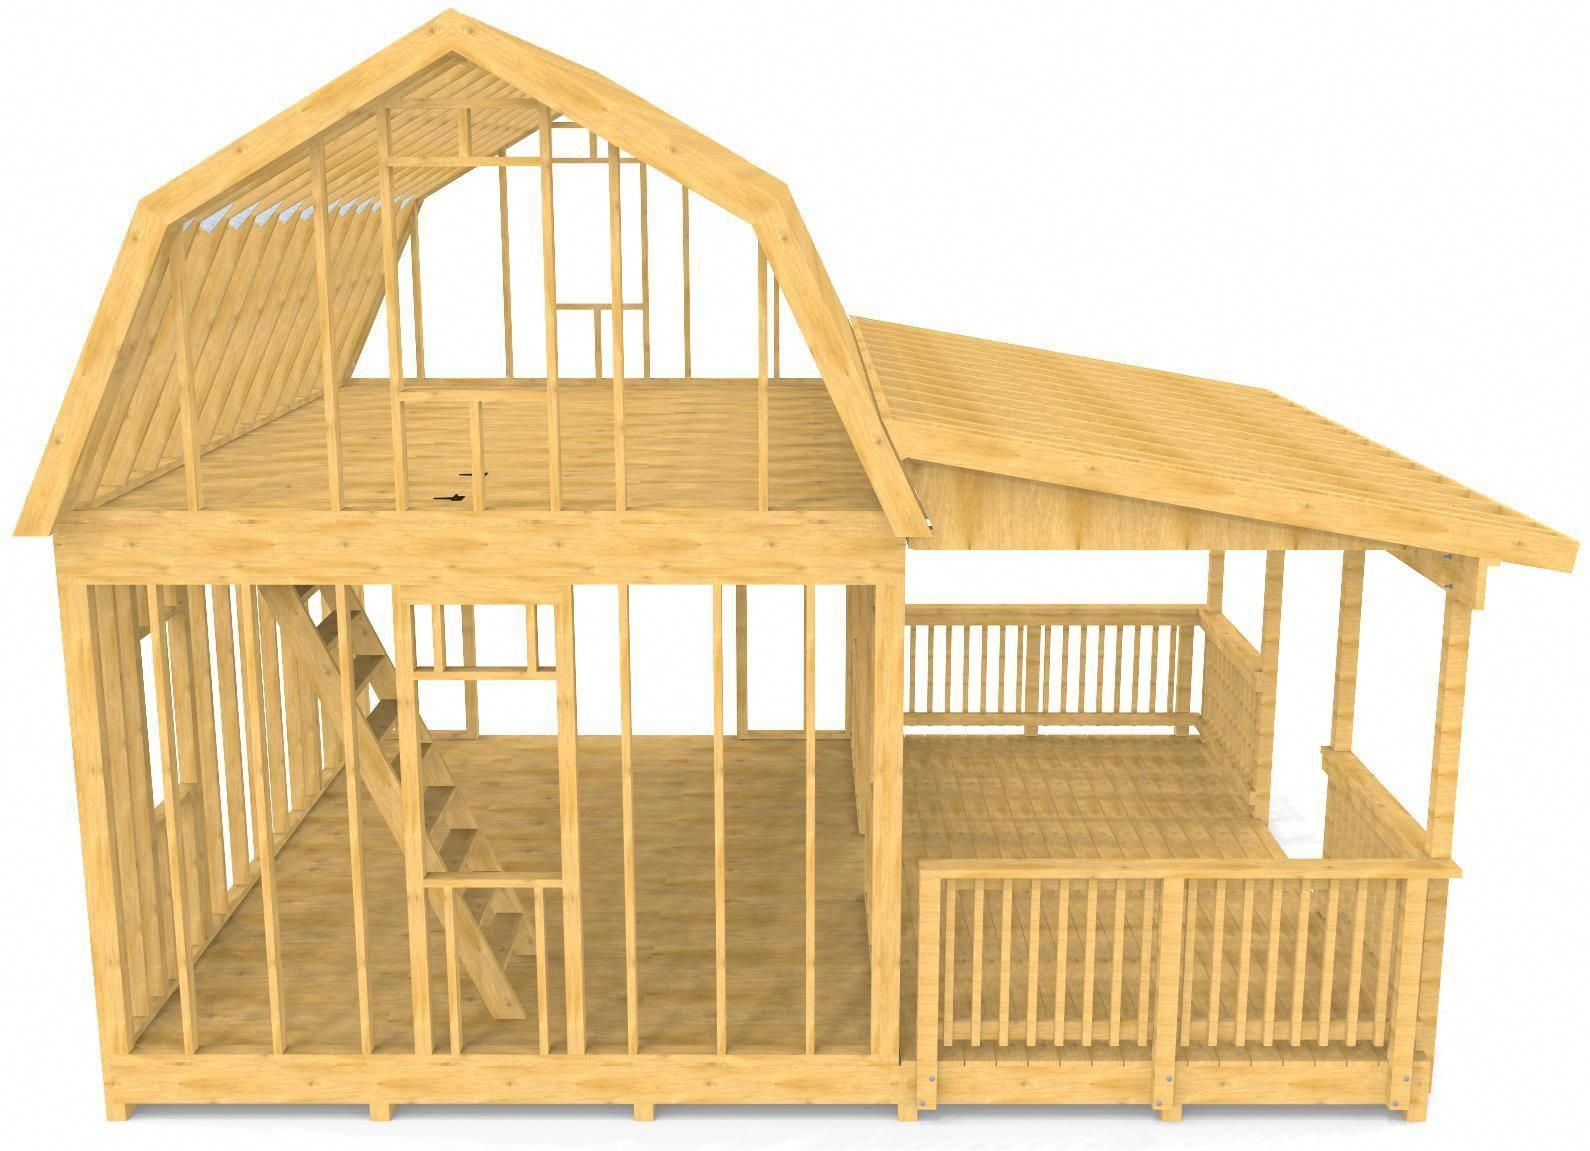 16x20 Barn Shed Plan 2 Story Porch Design Paul S Sheds Sheddesigns Small Shed Plans Diy Shed Plans Barns Sheds